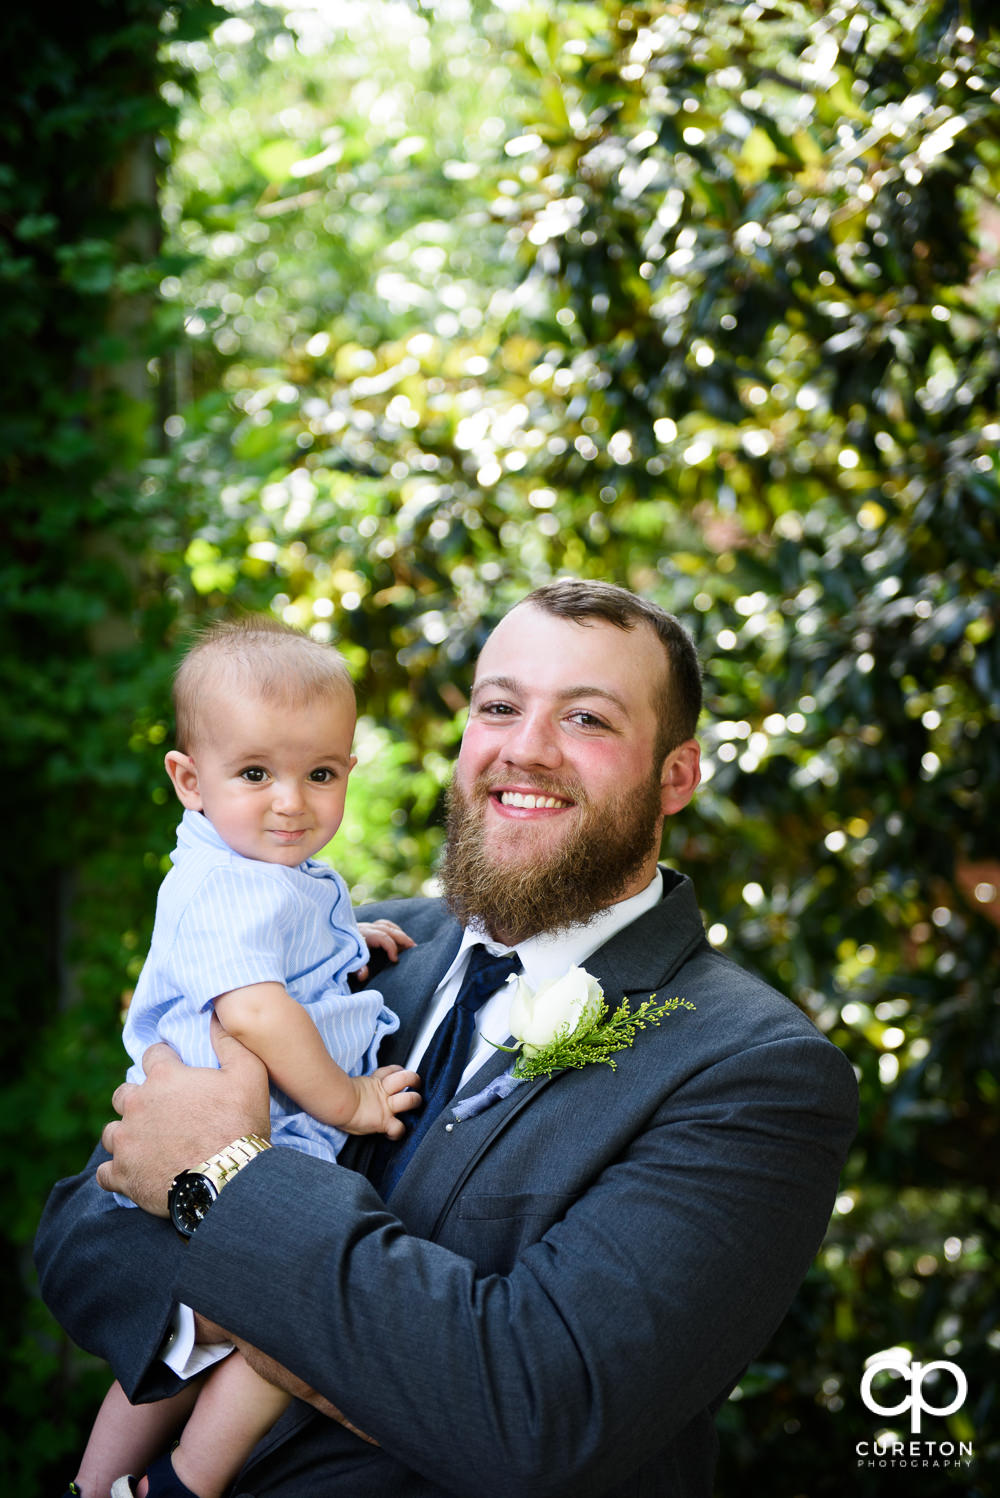 Groom kissing his infant son.